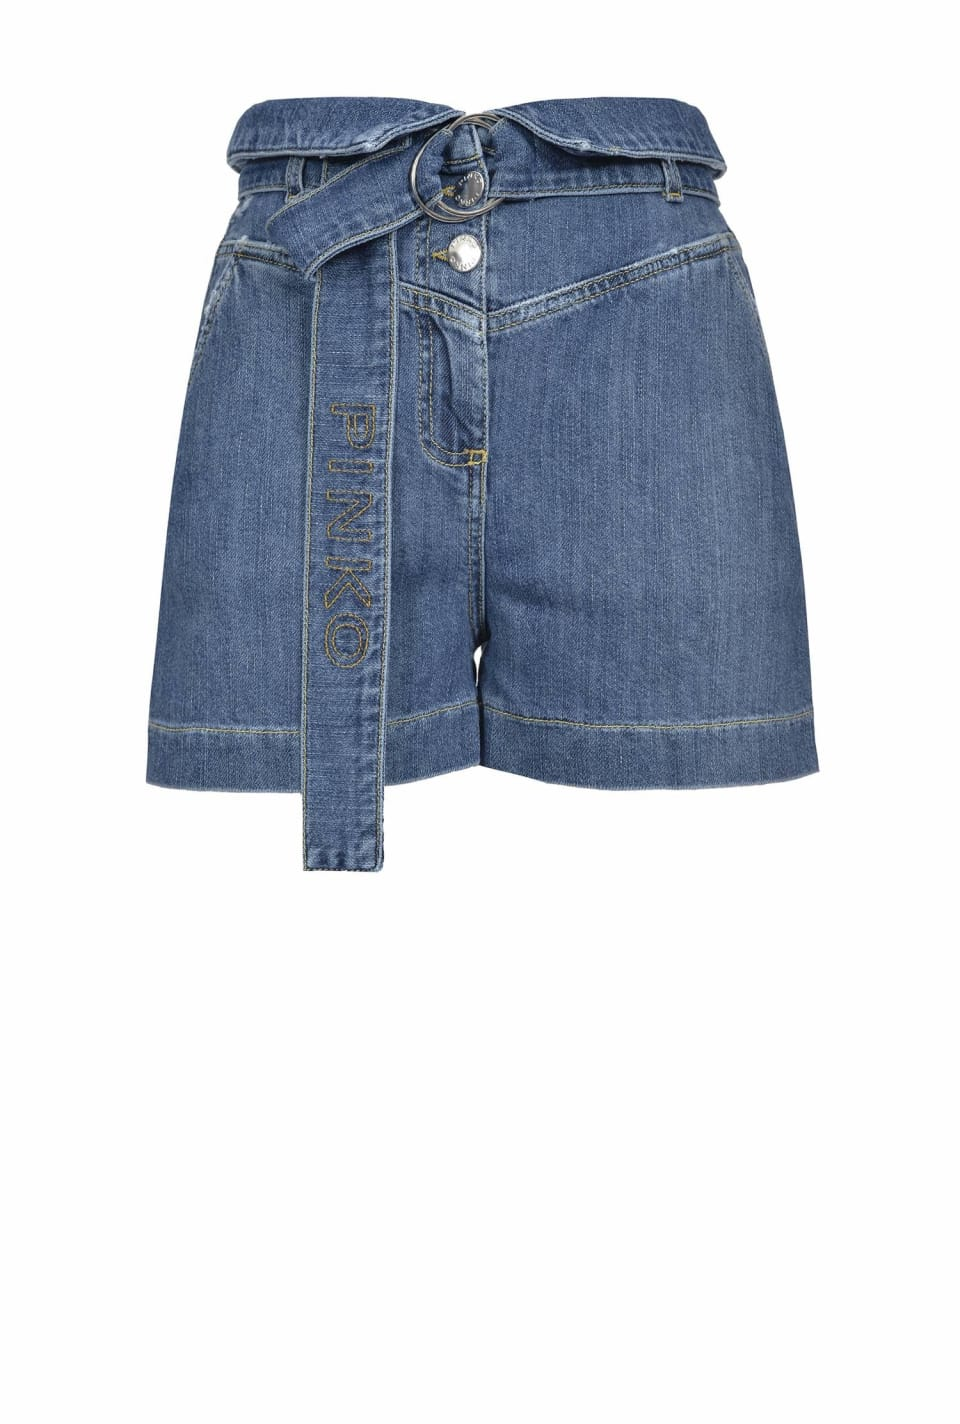 Jeans shorts with belt